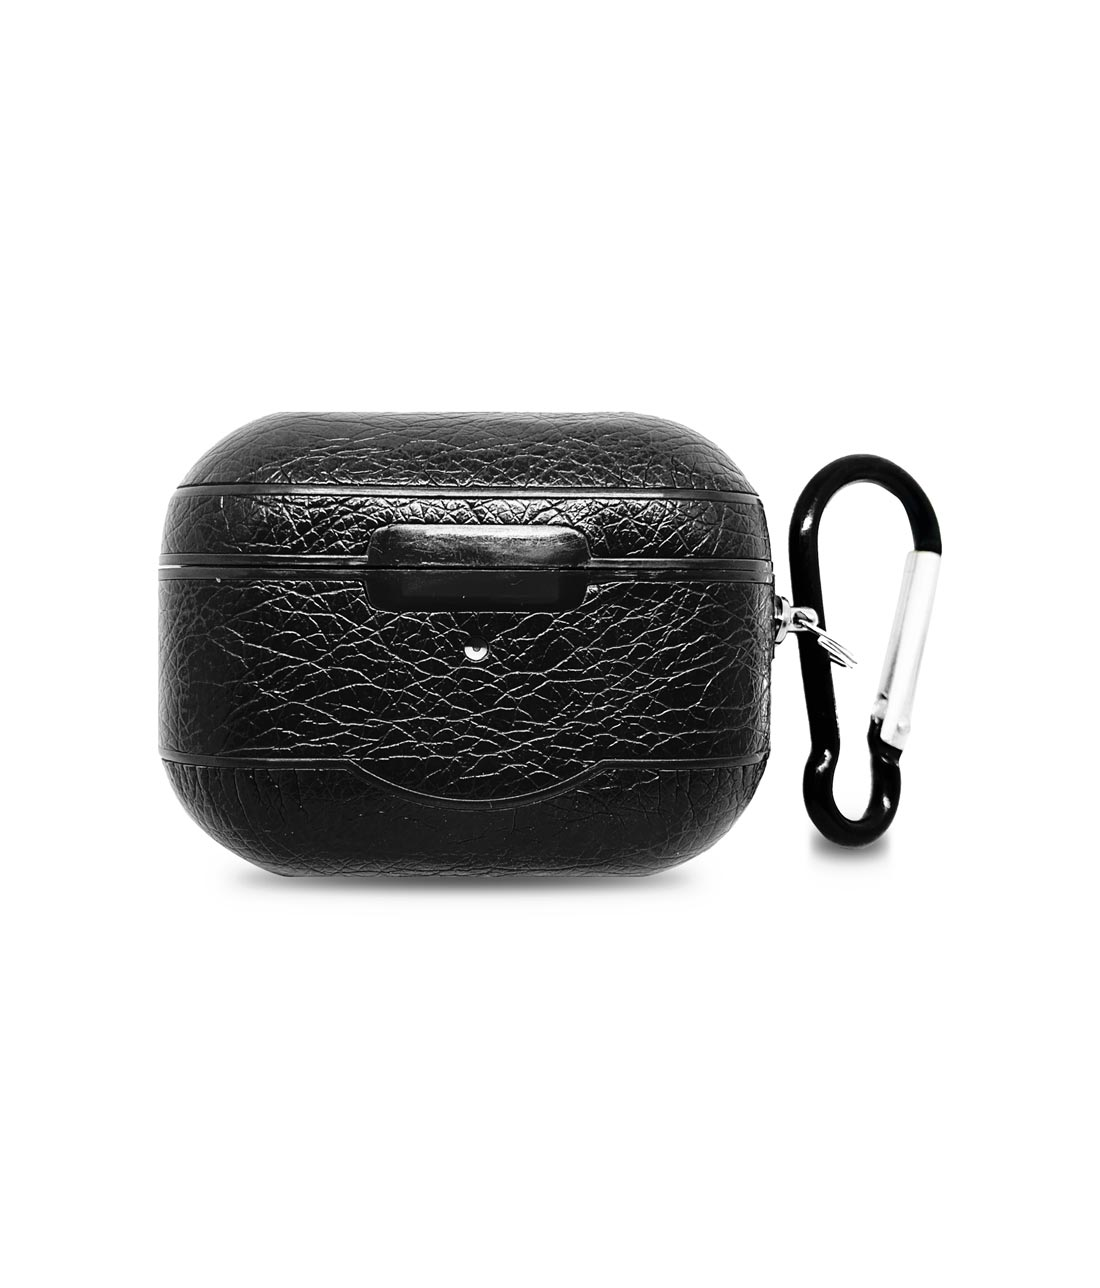 Leather Case Black - AirPods Pro Case